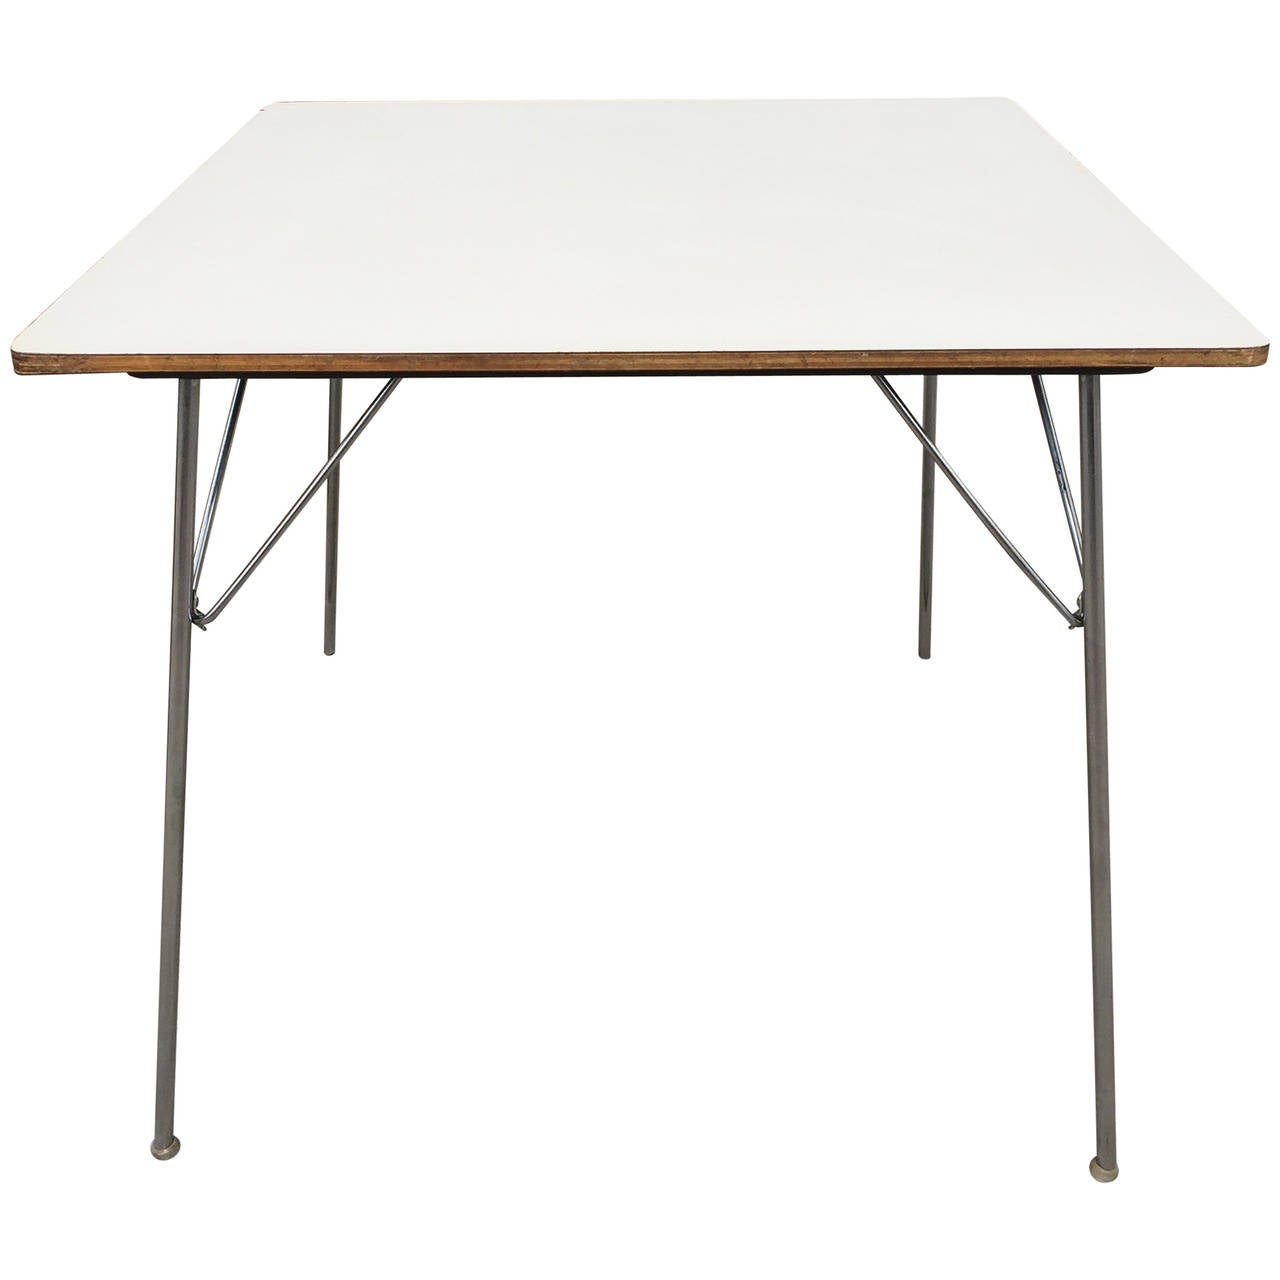 Charles and ray eames dtm table for herman miller circa for Table charles eames